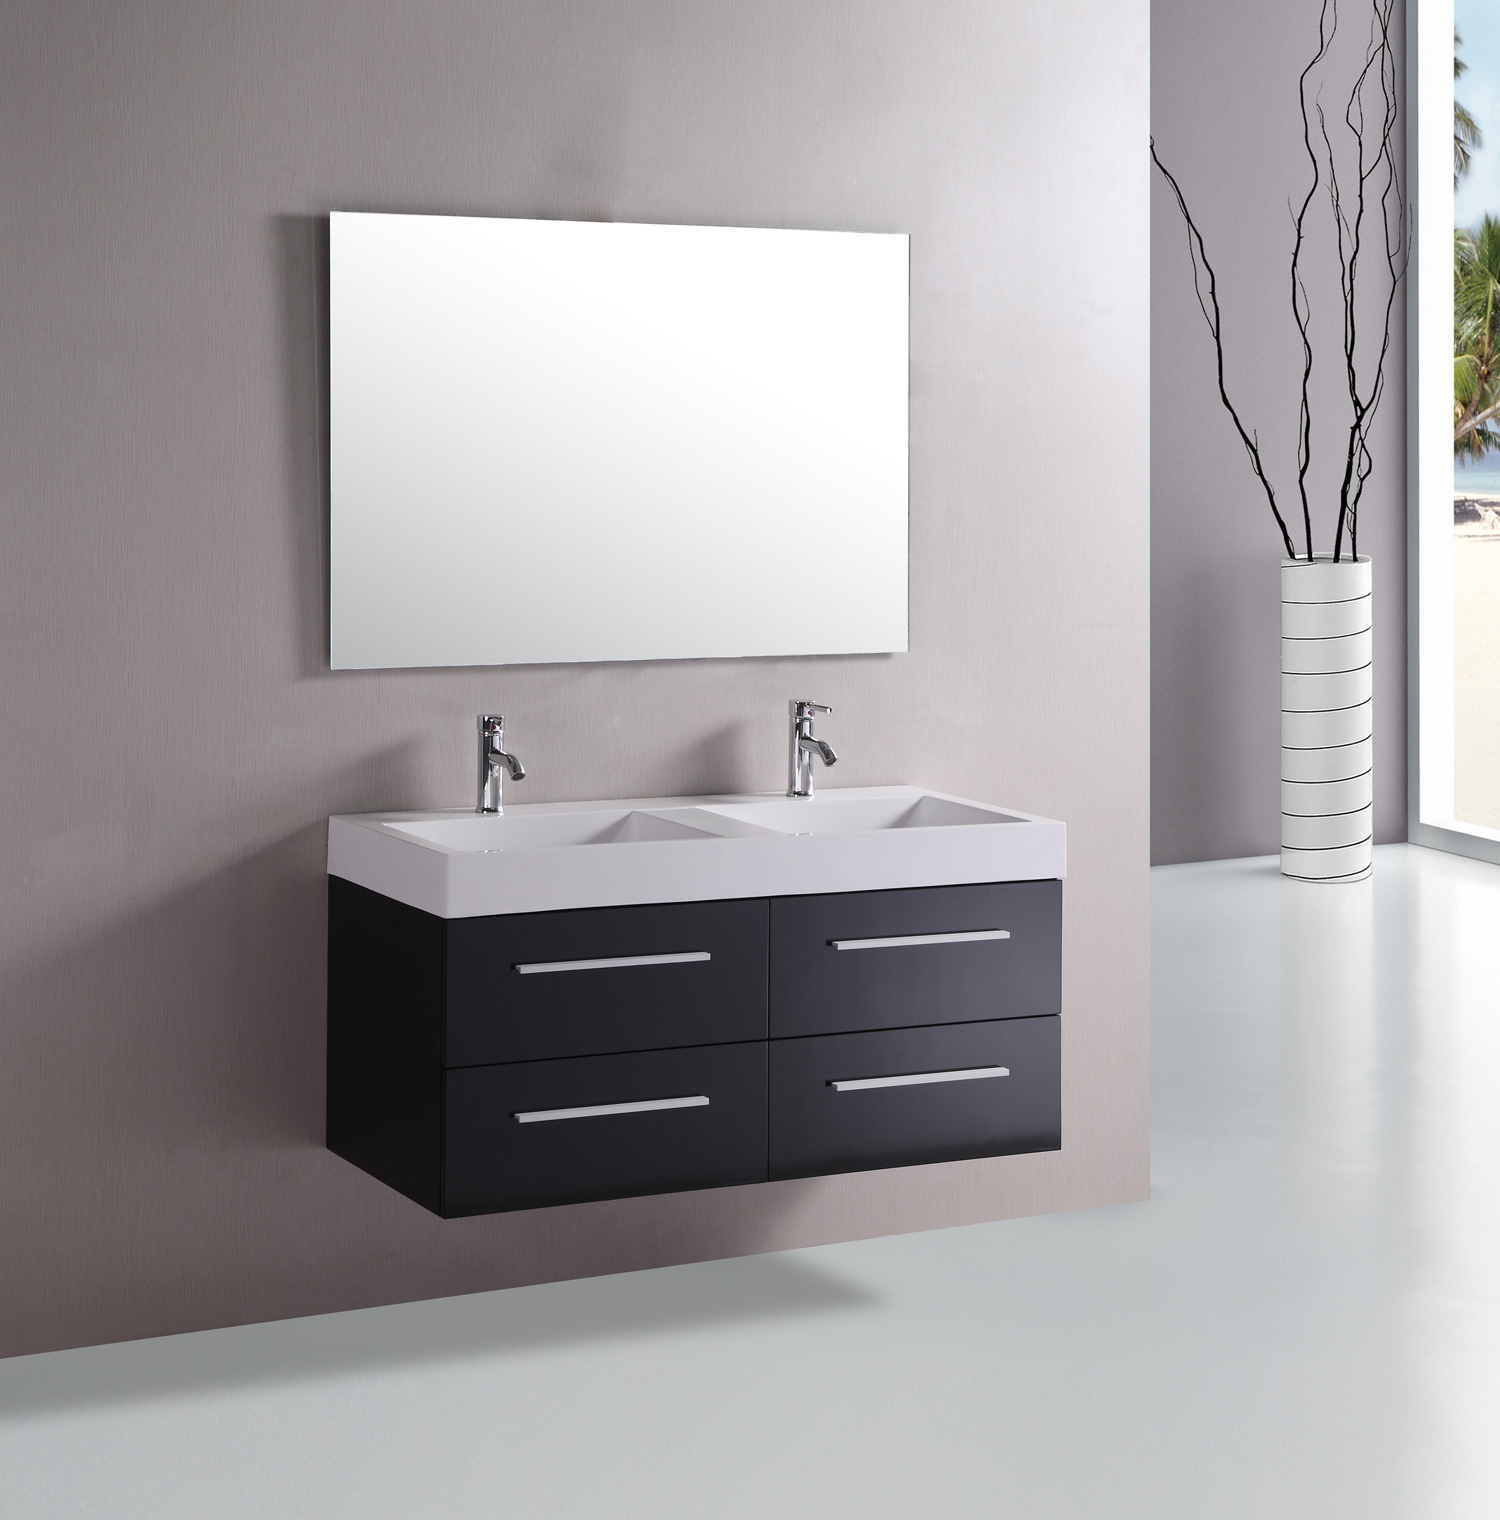 Image of: 36 Inch Bathroom Vanity Floating